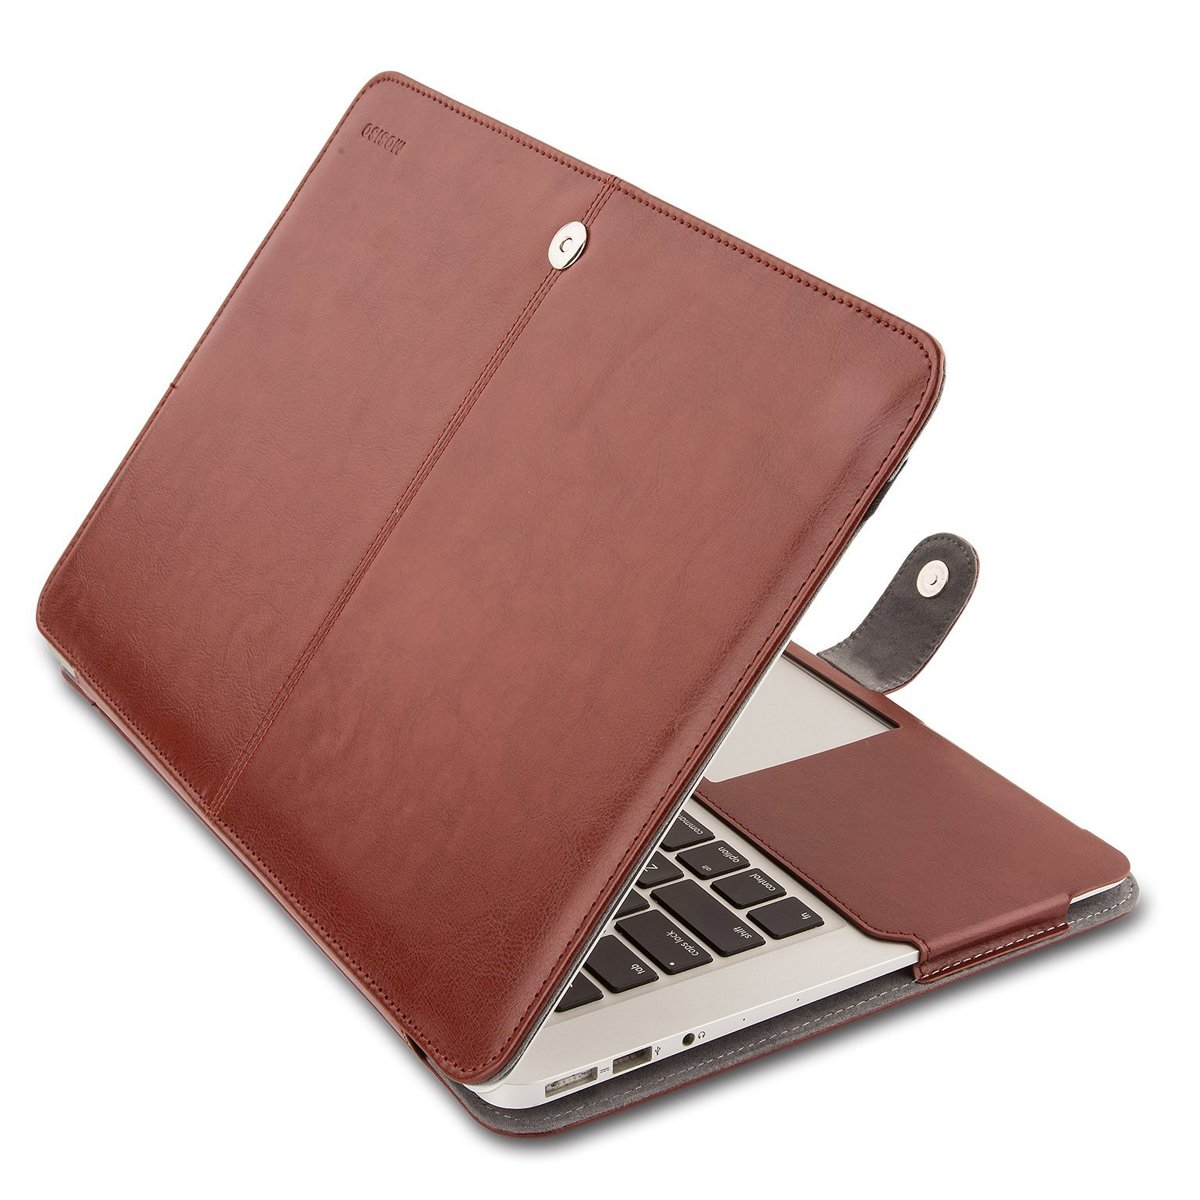 MOSISO PU Leather Case Only Compatible with MacBook Air 13 Inch A1466/A1369, Premium Quality Book Cover Folio Sleeve with Stand Function, Brown